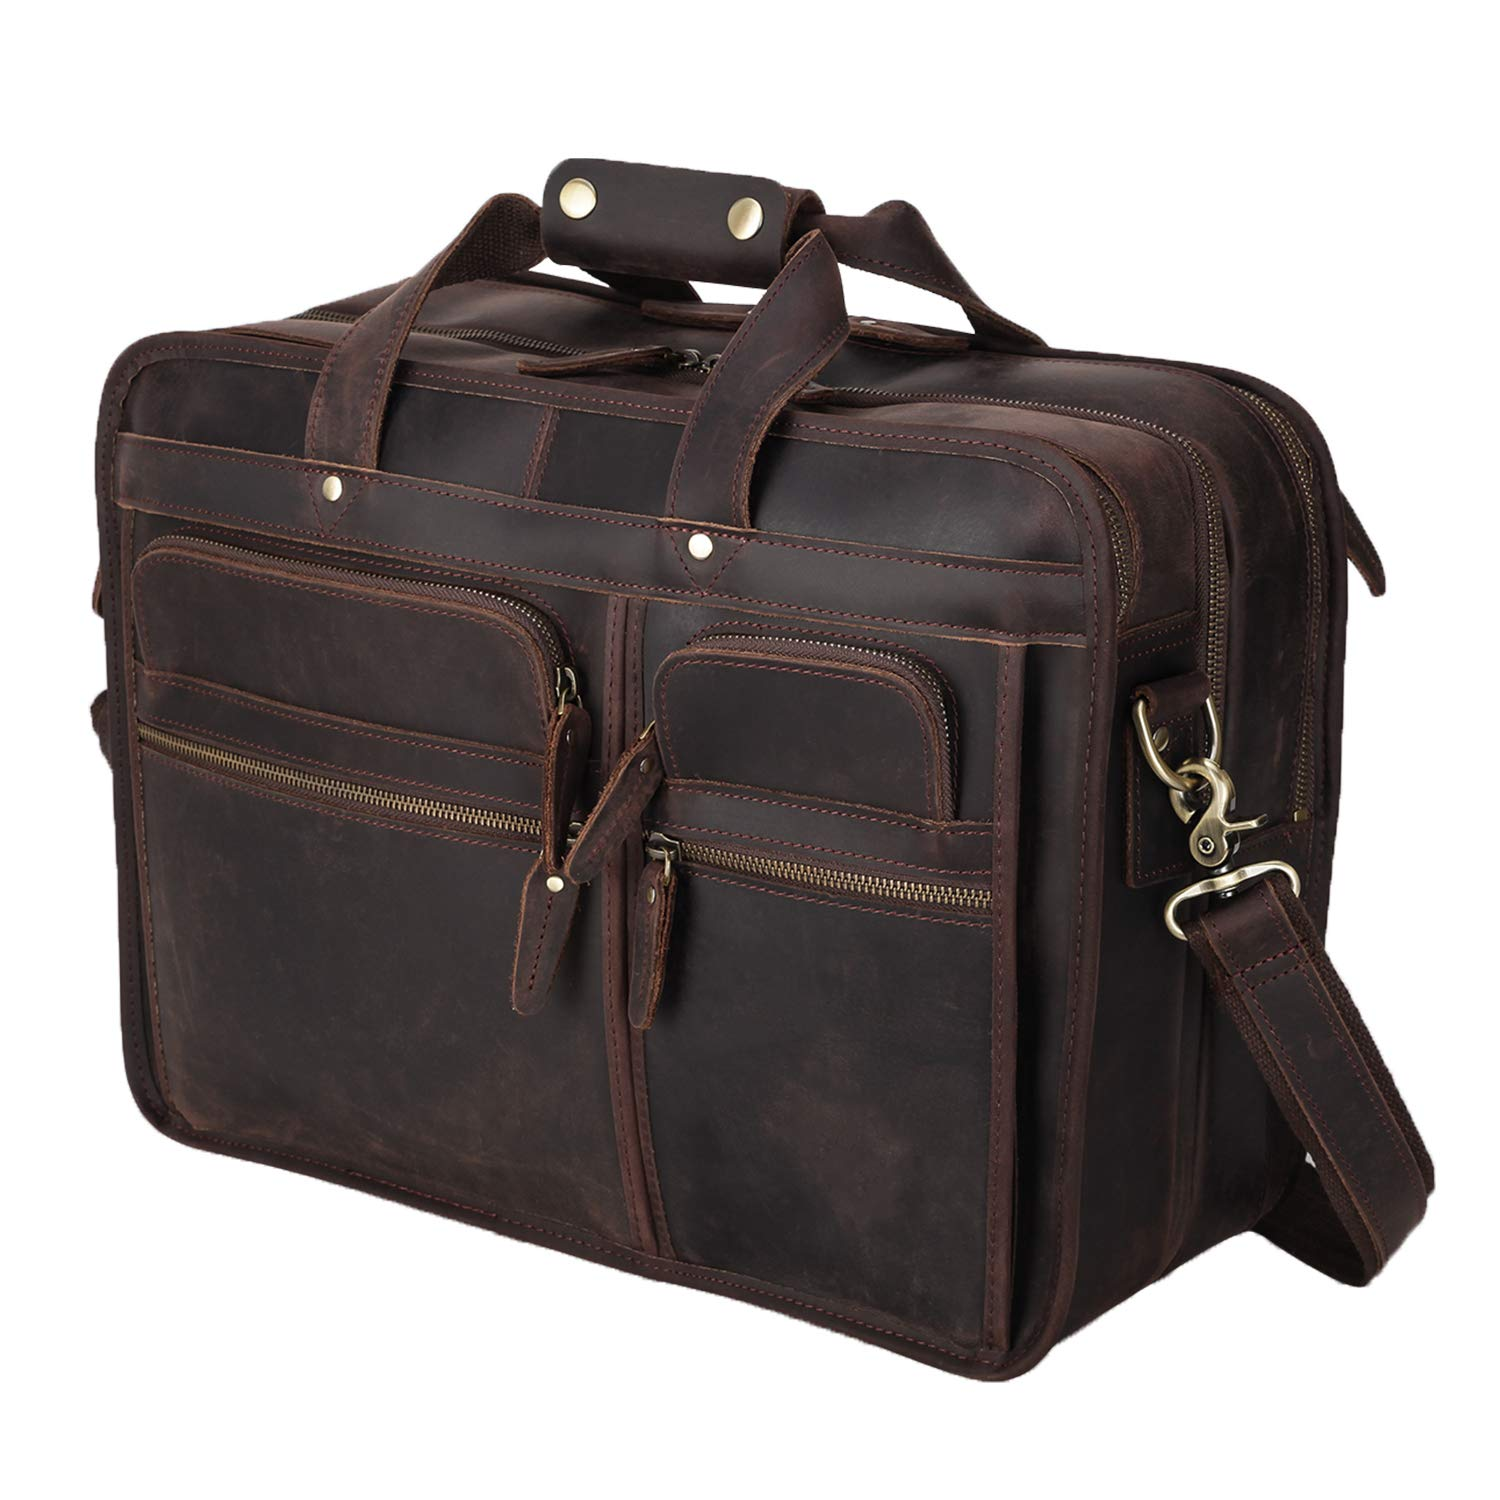 """Polare Modern Messenger Bag with Retro Feel 17"""" Men's Laptop Briefcase with Full Grain Leather and Premium YKK Zippers"""